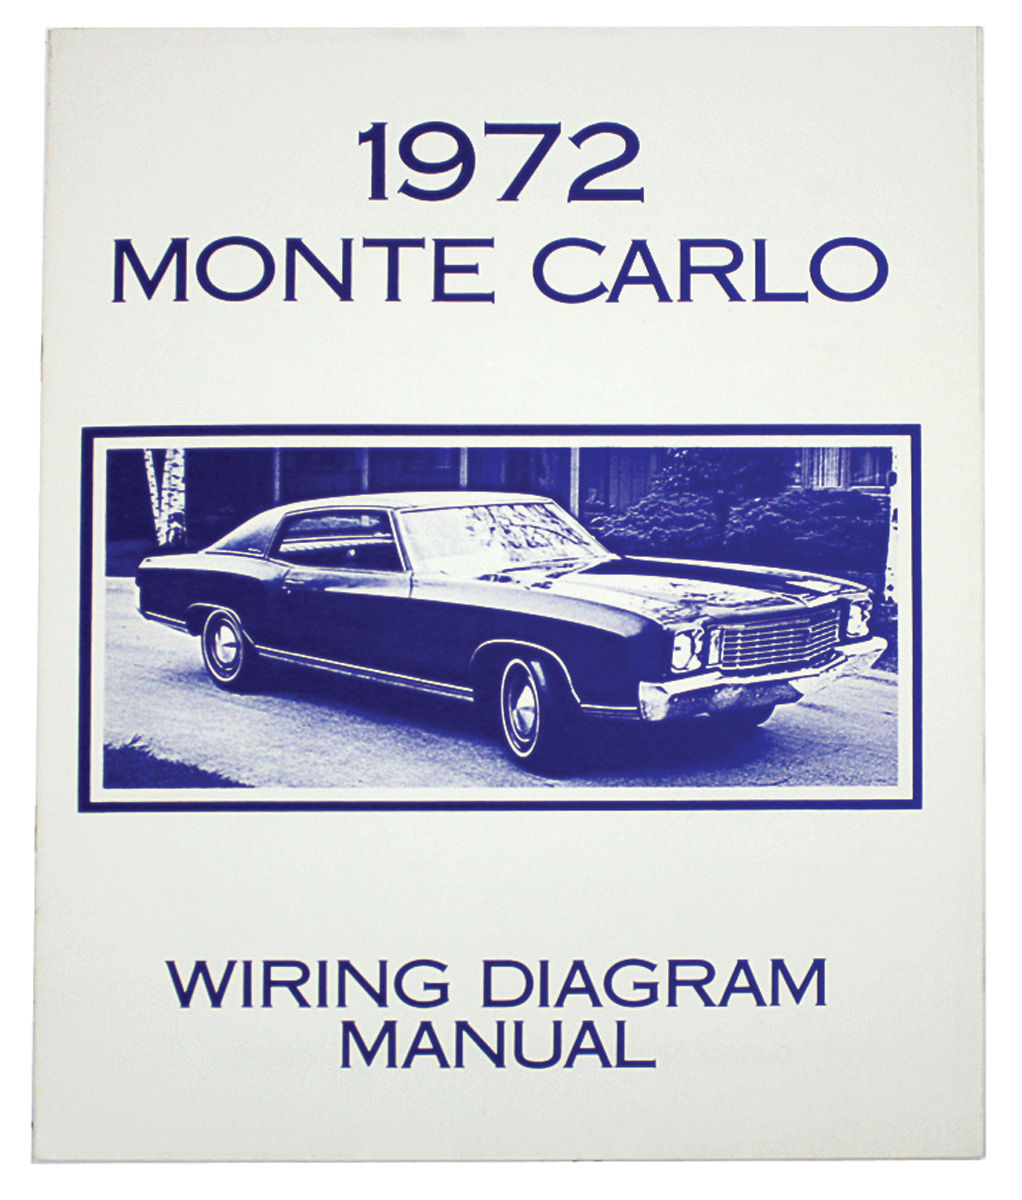 small resolution of monte carlo wiring diagram manuals opgi com rh opgi com 1972 chevy blazer wiring diagram 1996 chevy monte carlo